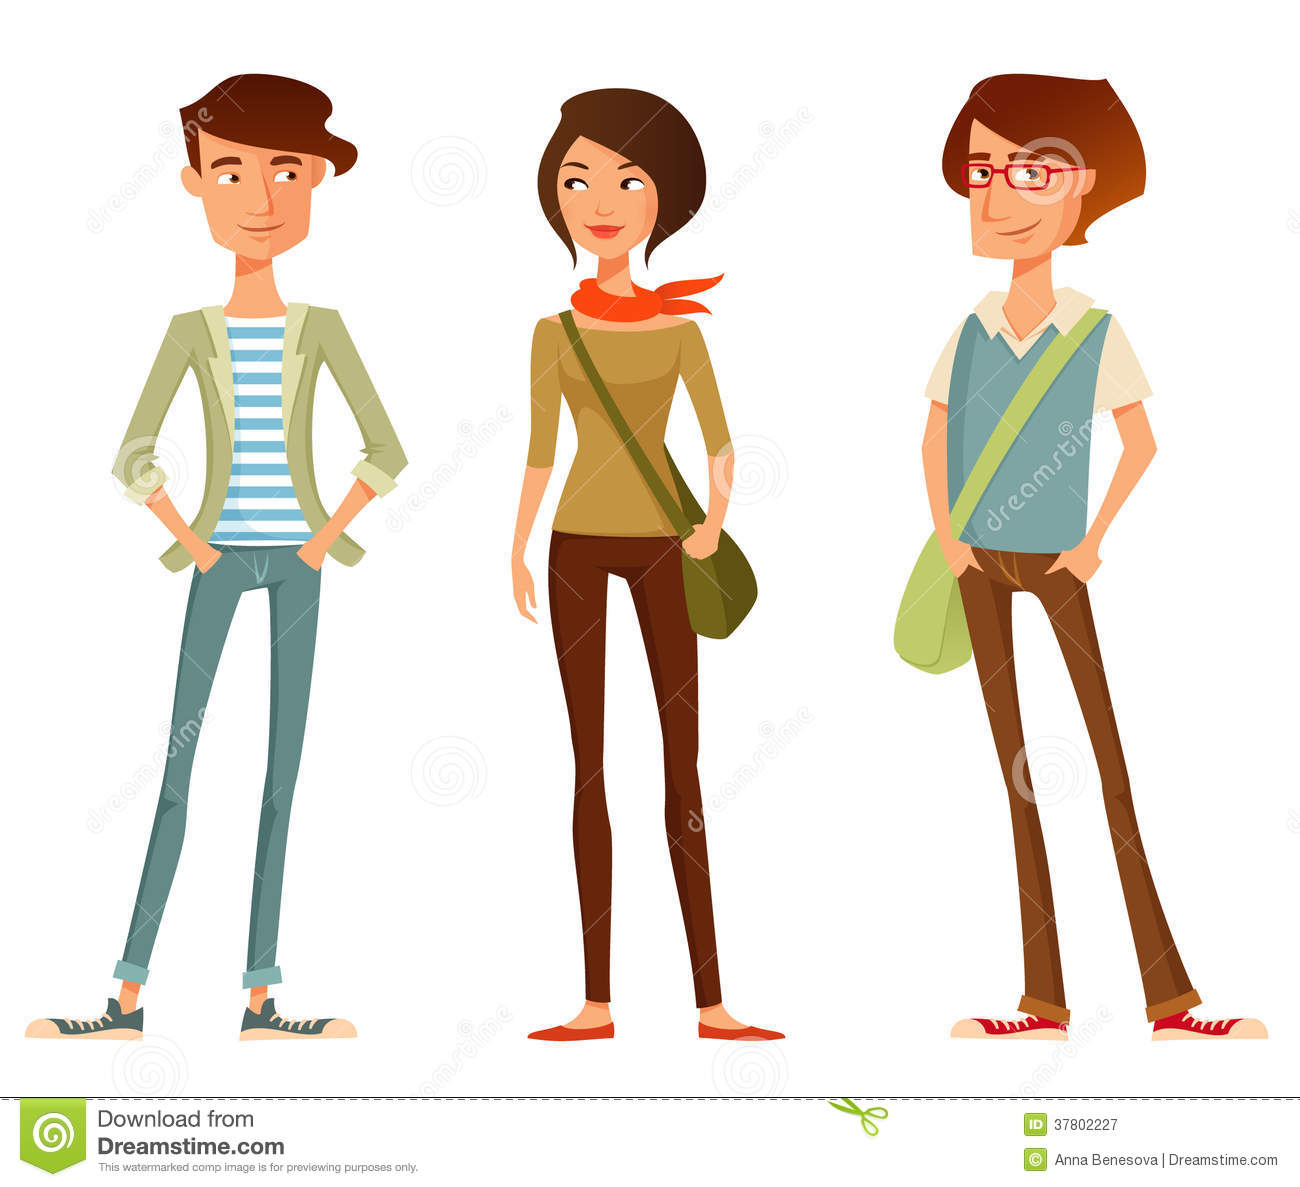 Cute Cartoon People In Hipster Fashion Stock Vector ...